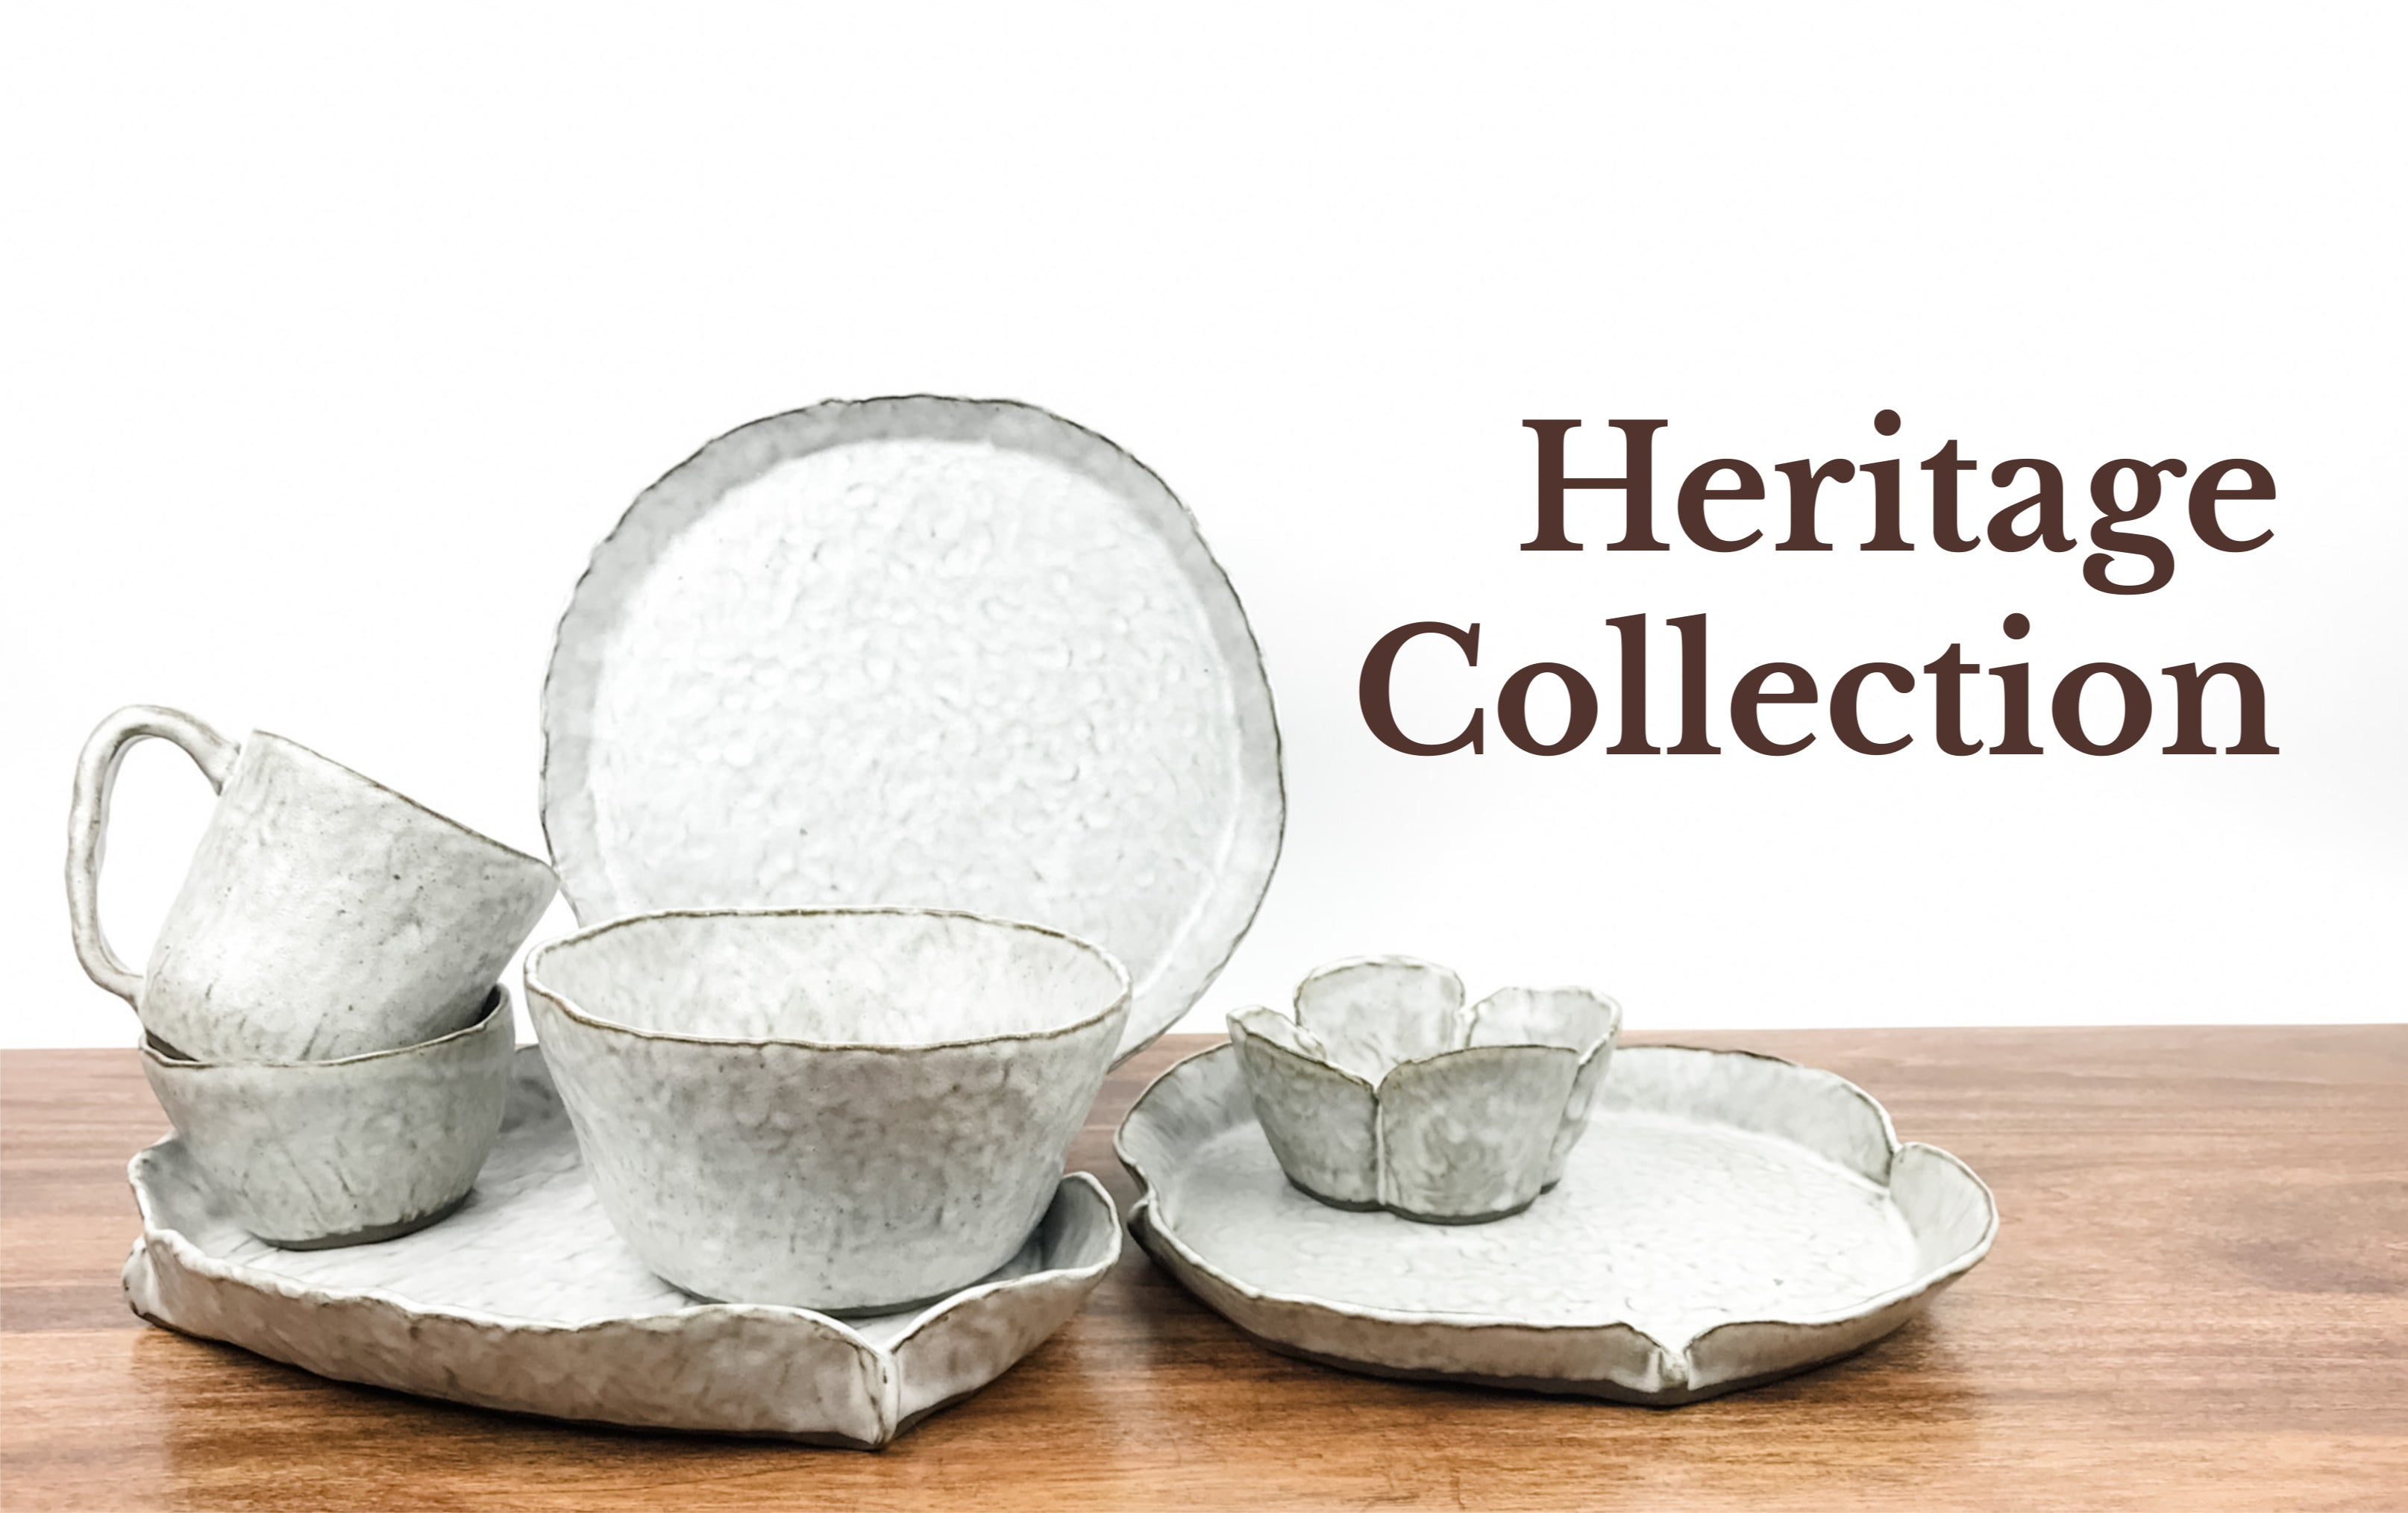 Handmade Pottery Heritage Collection